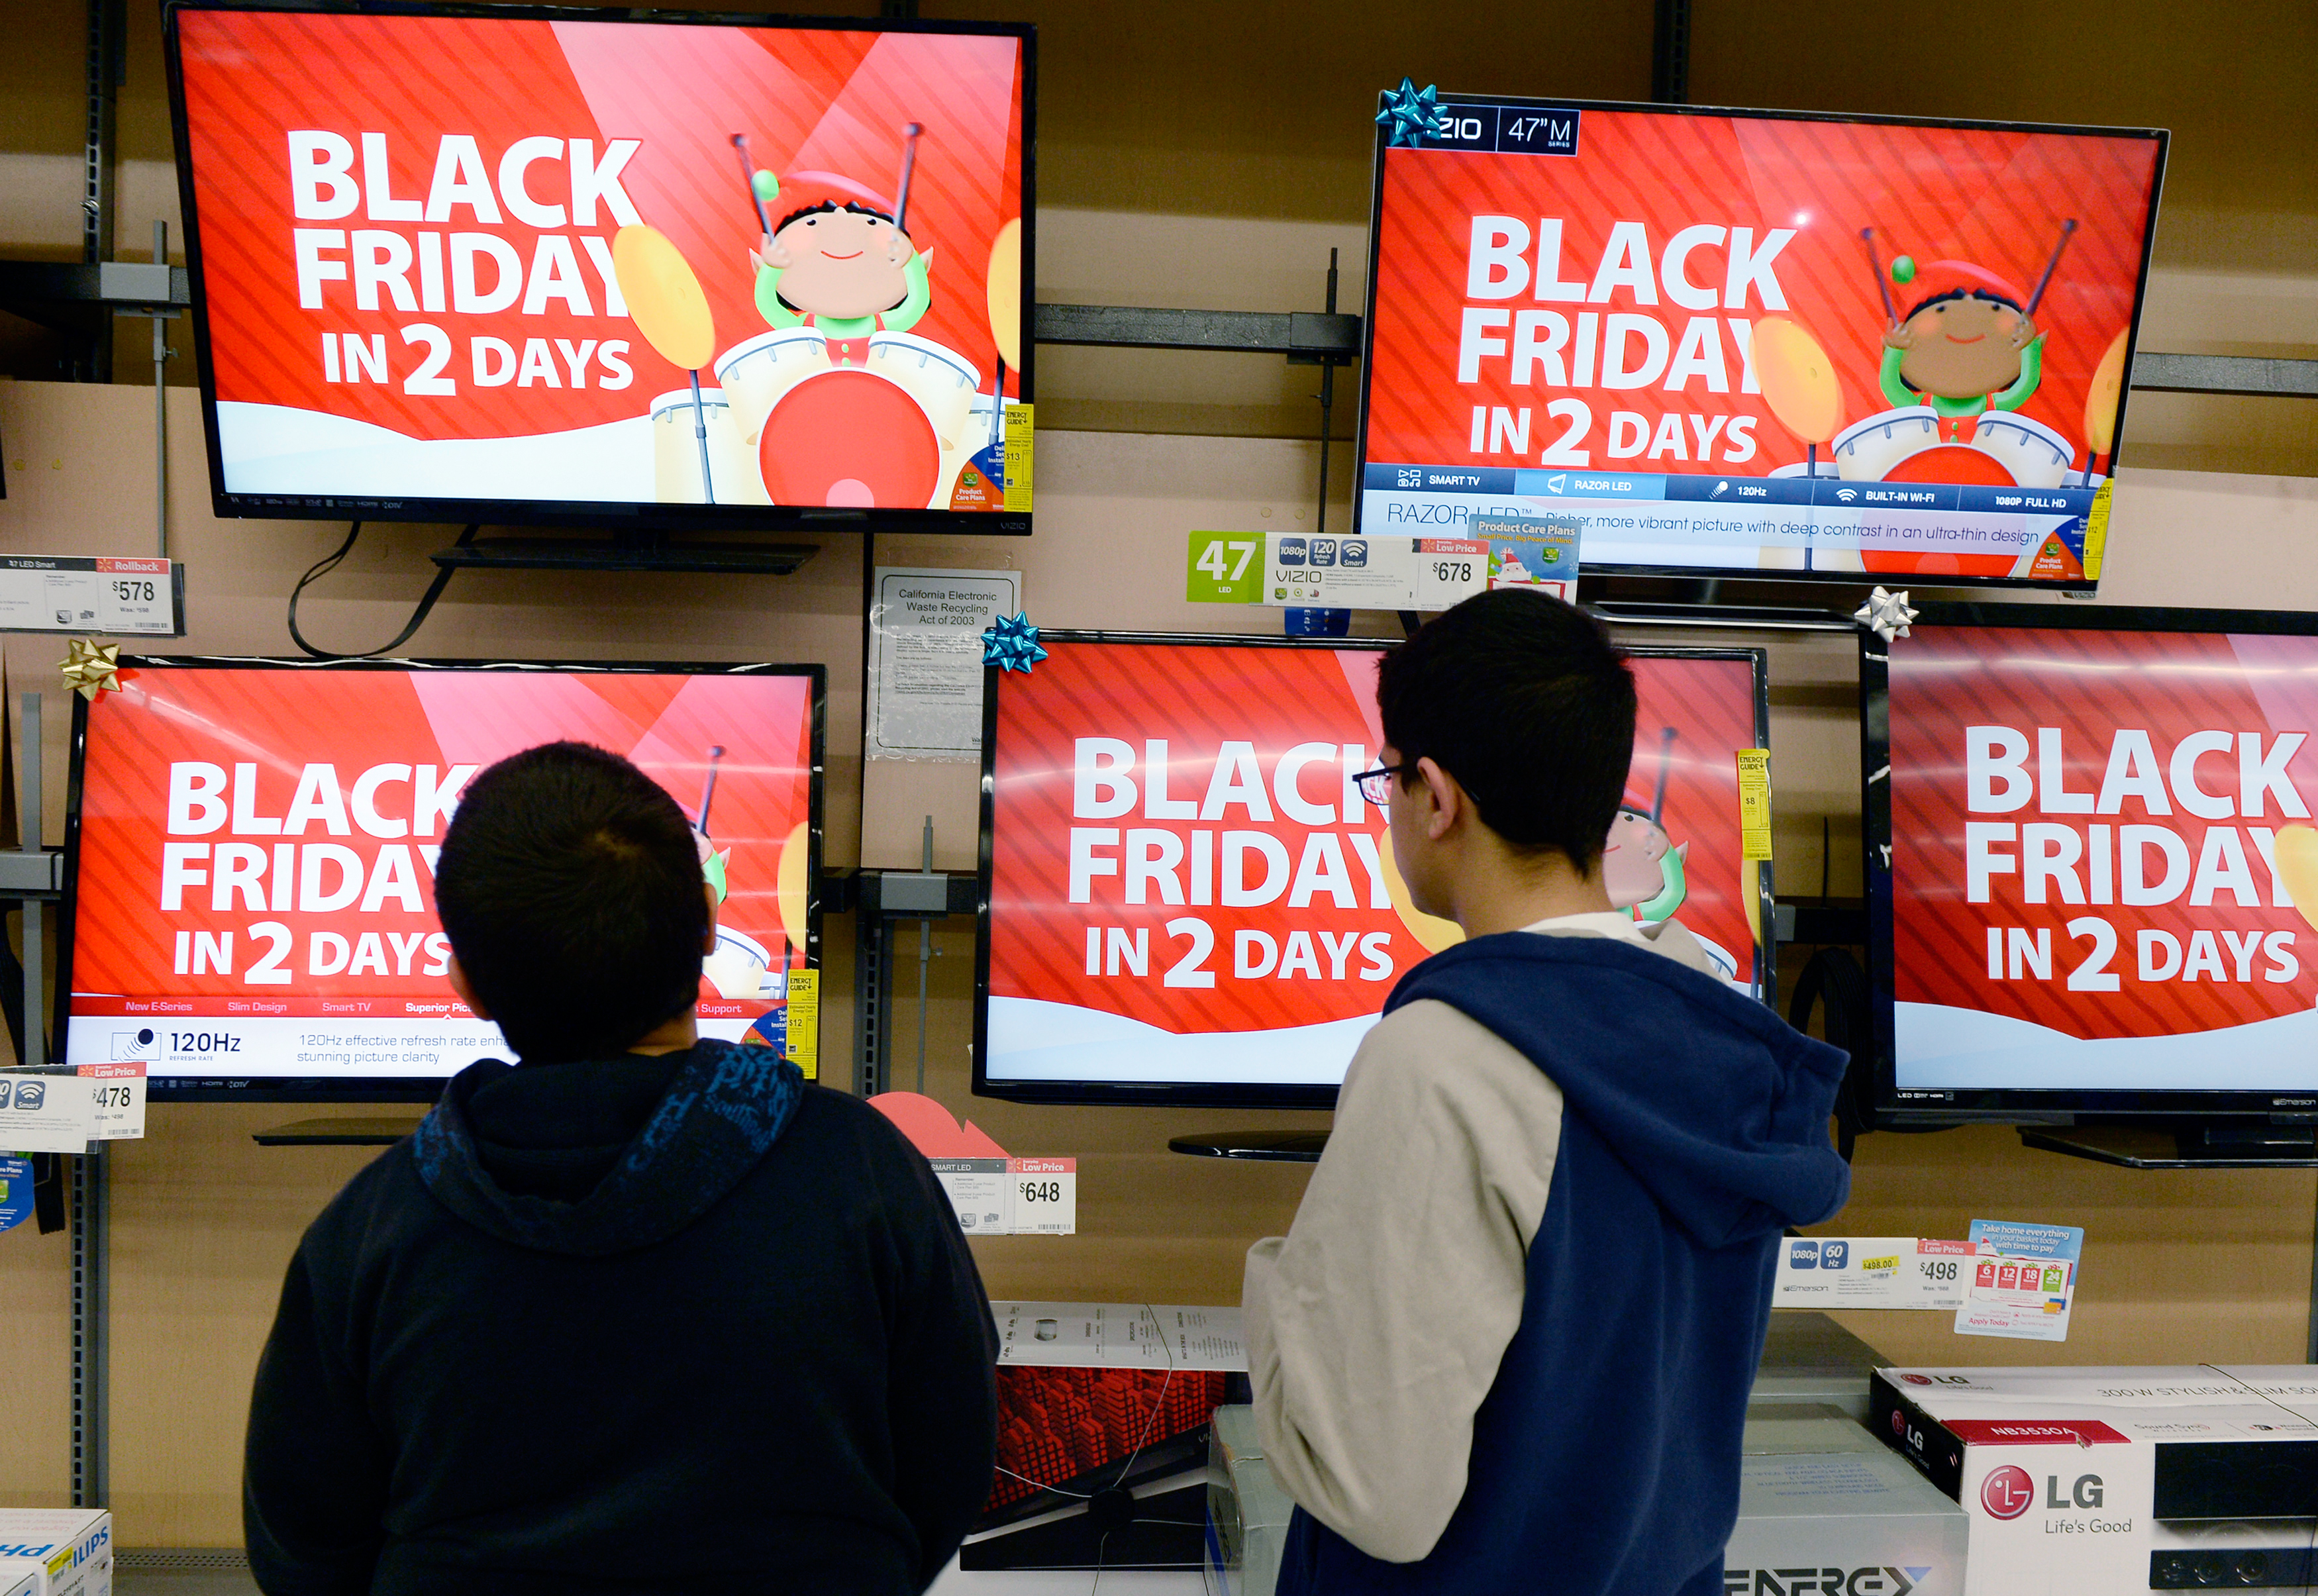 Customers shopping at a Walmart store on Black Friday 2013.